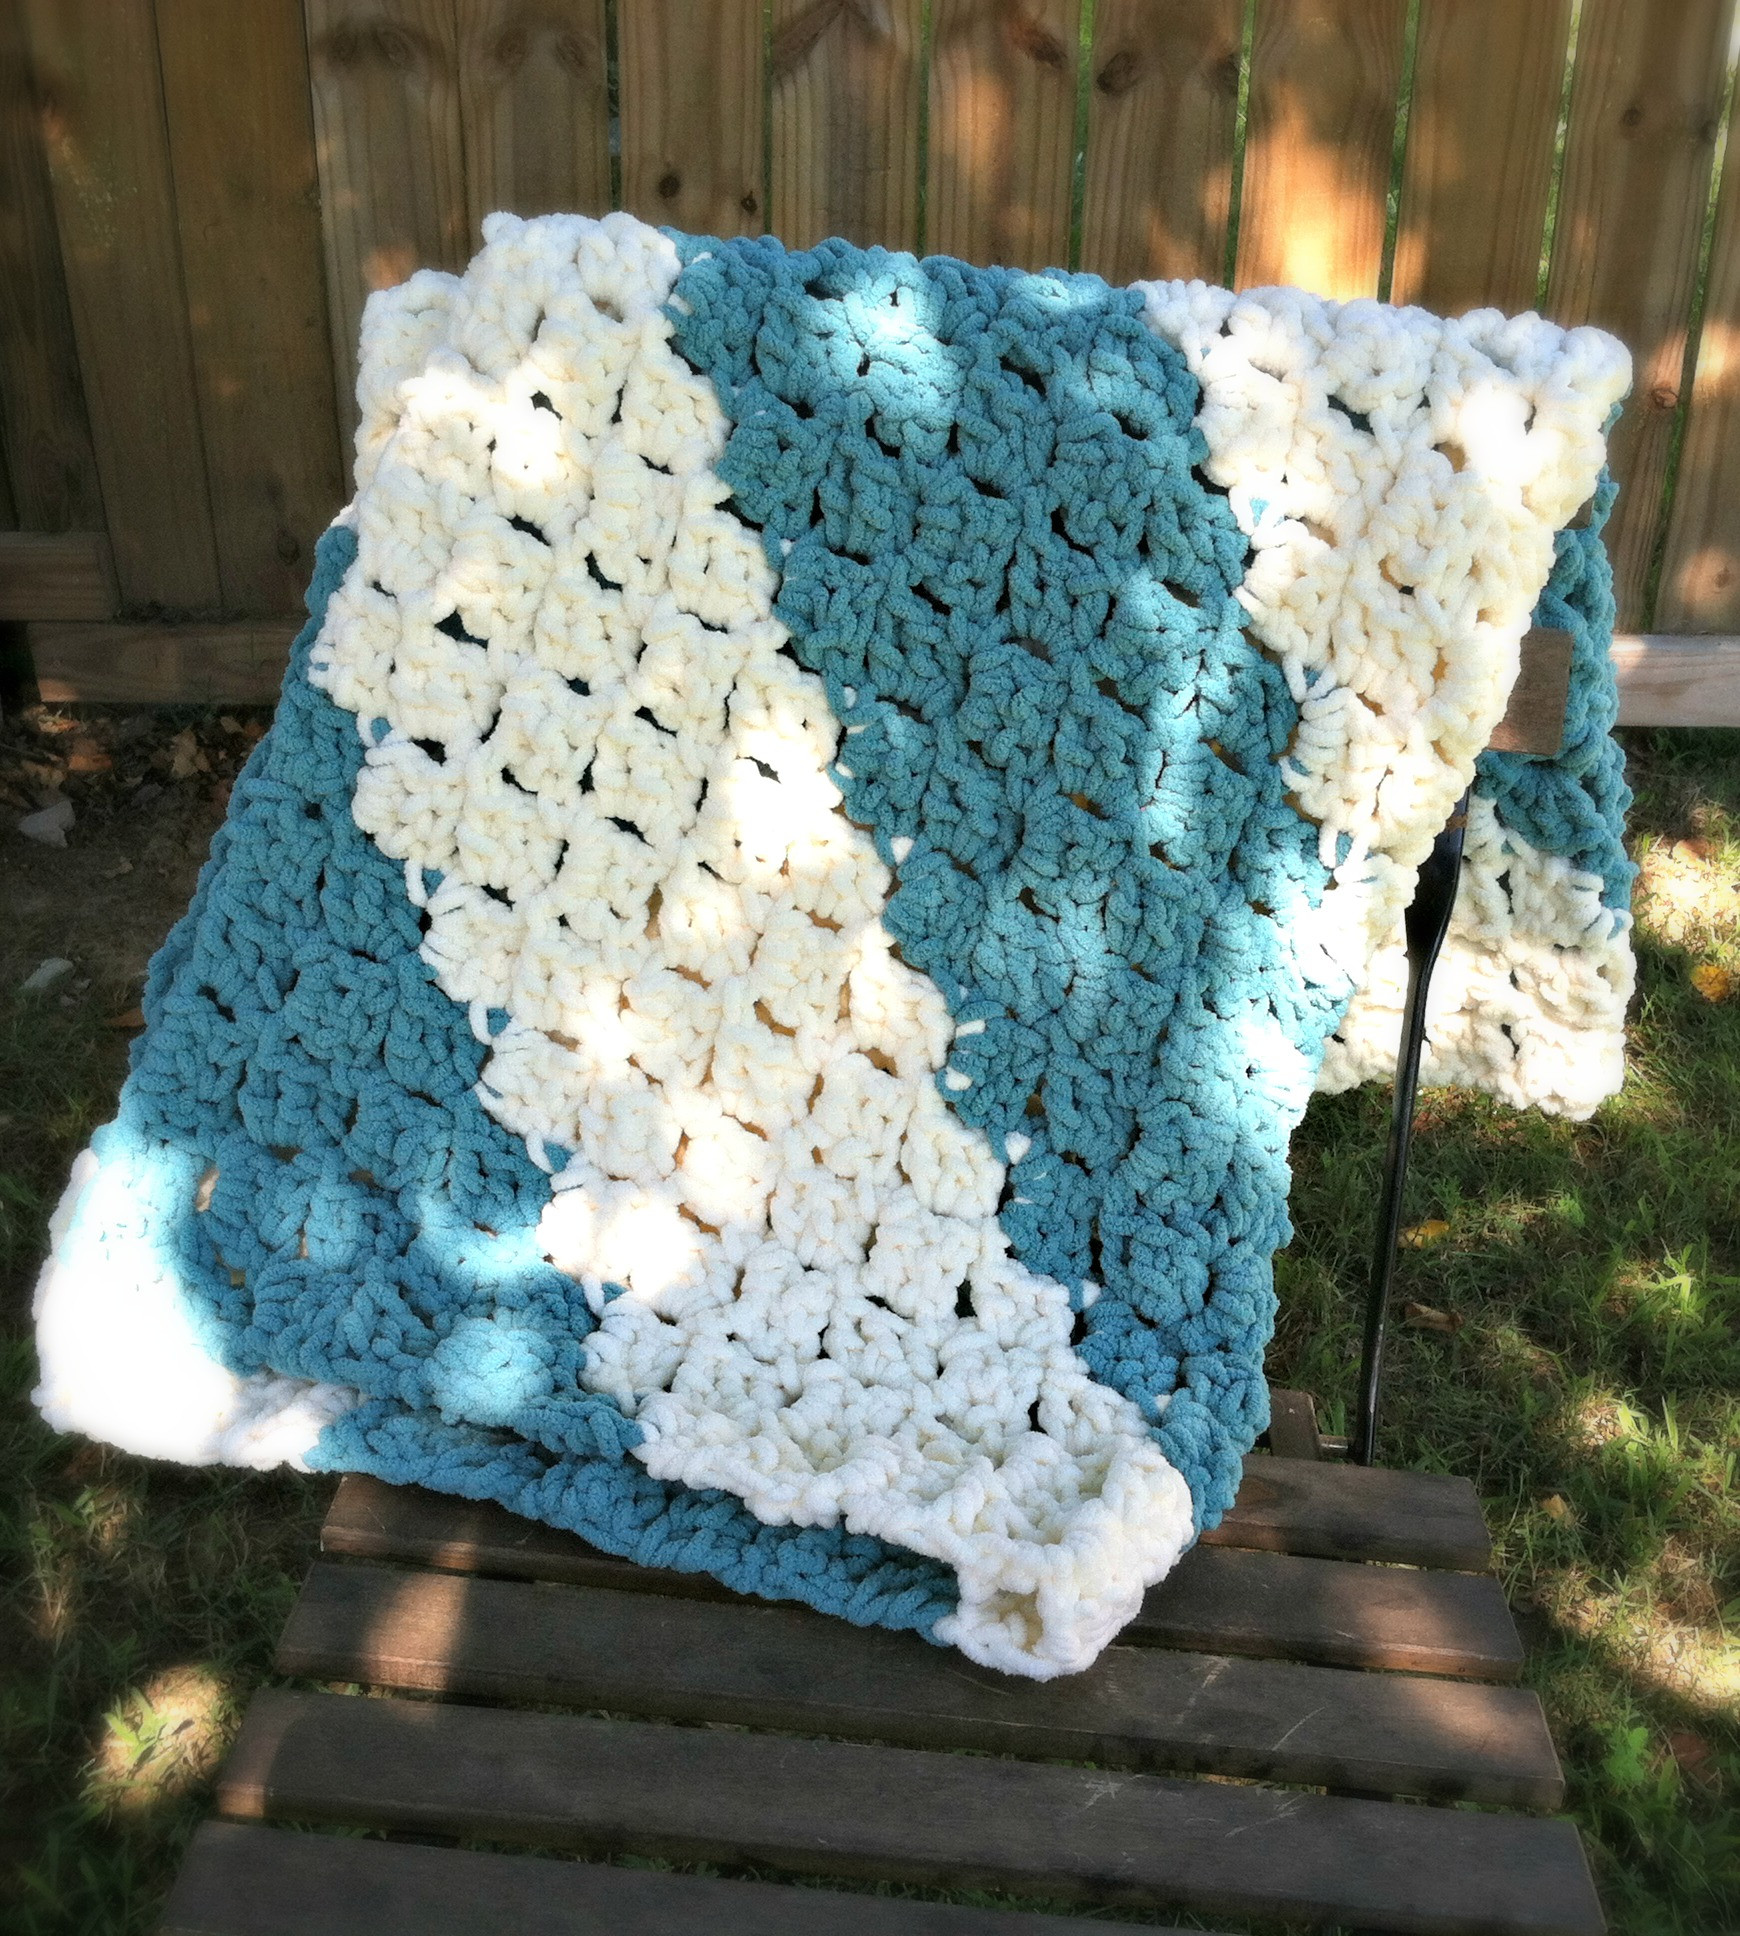 Easy Crochet Throw Patterns New Quick and Easy Baby Blanket Free Crochet Pattern Of New 47 Pictures Easy Crochet Throw Patterns